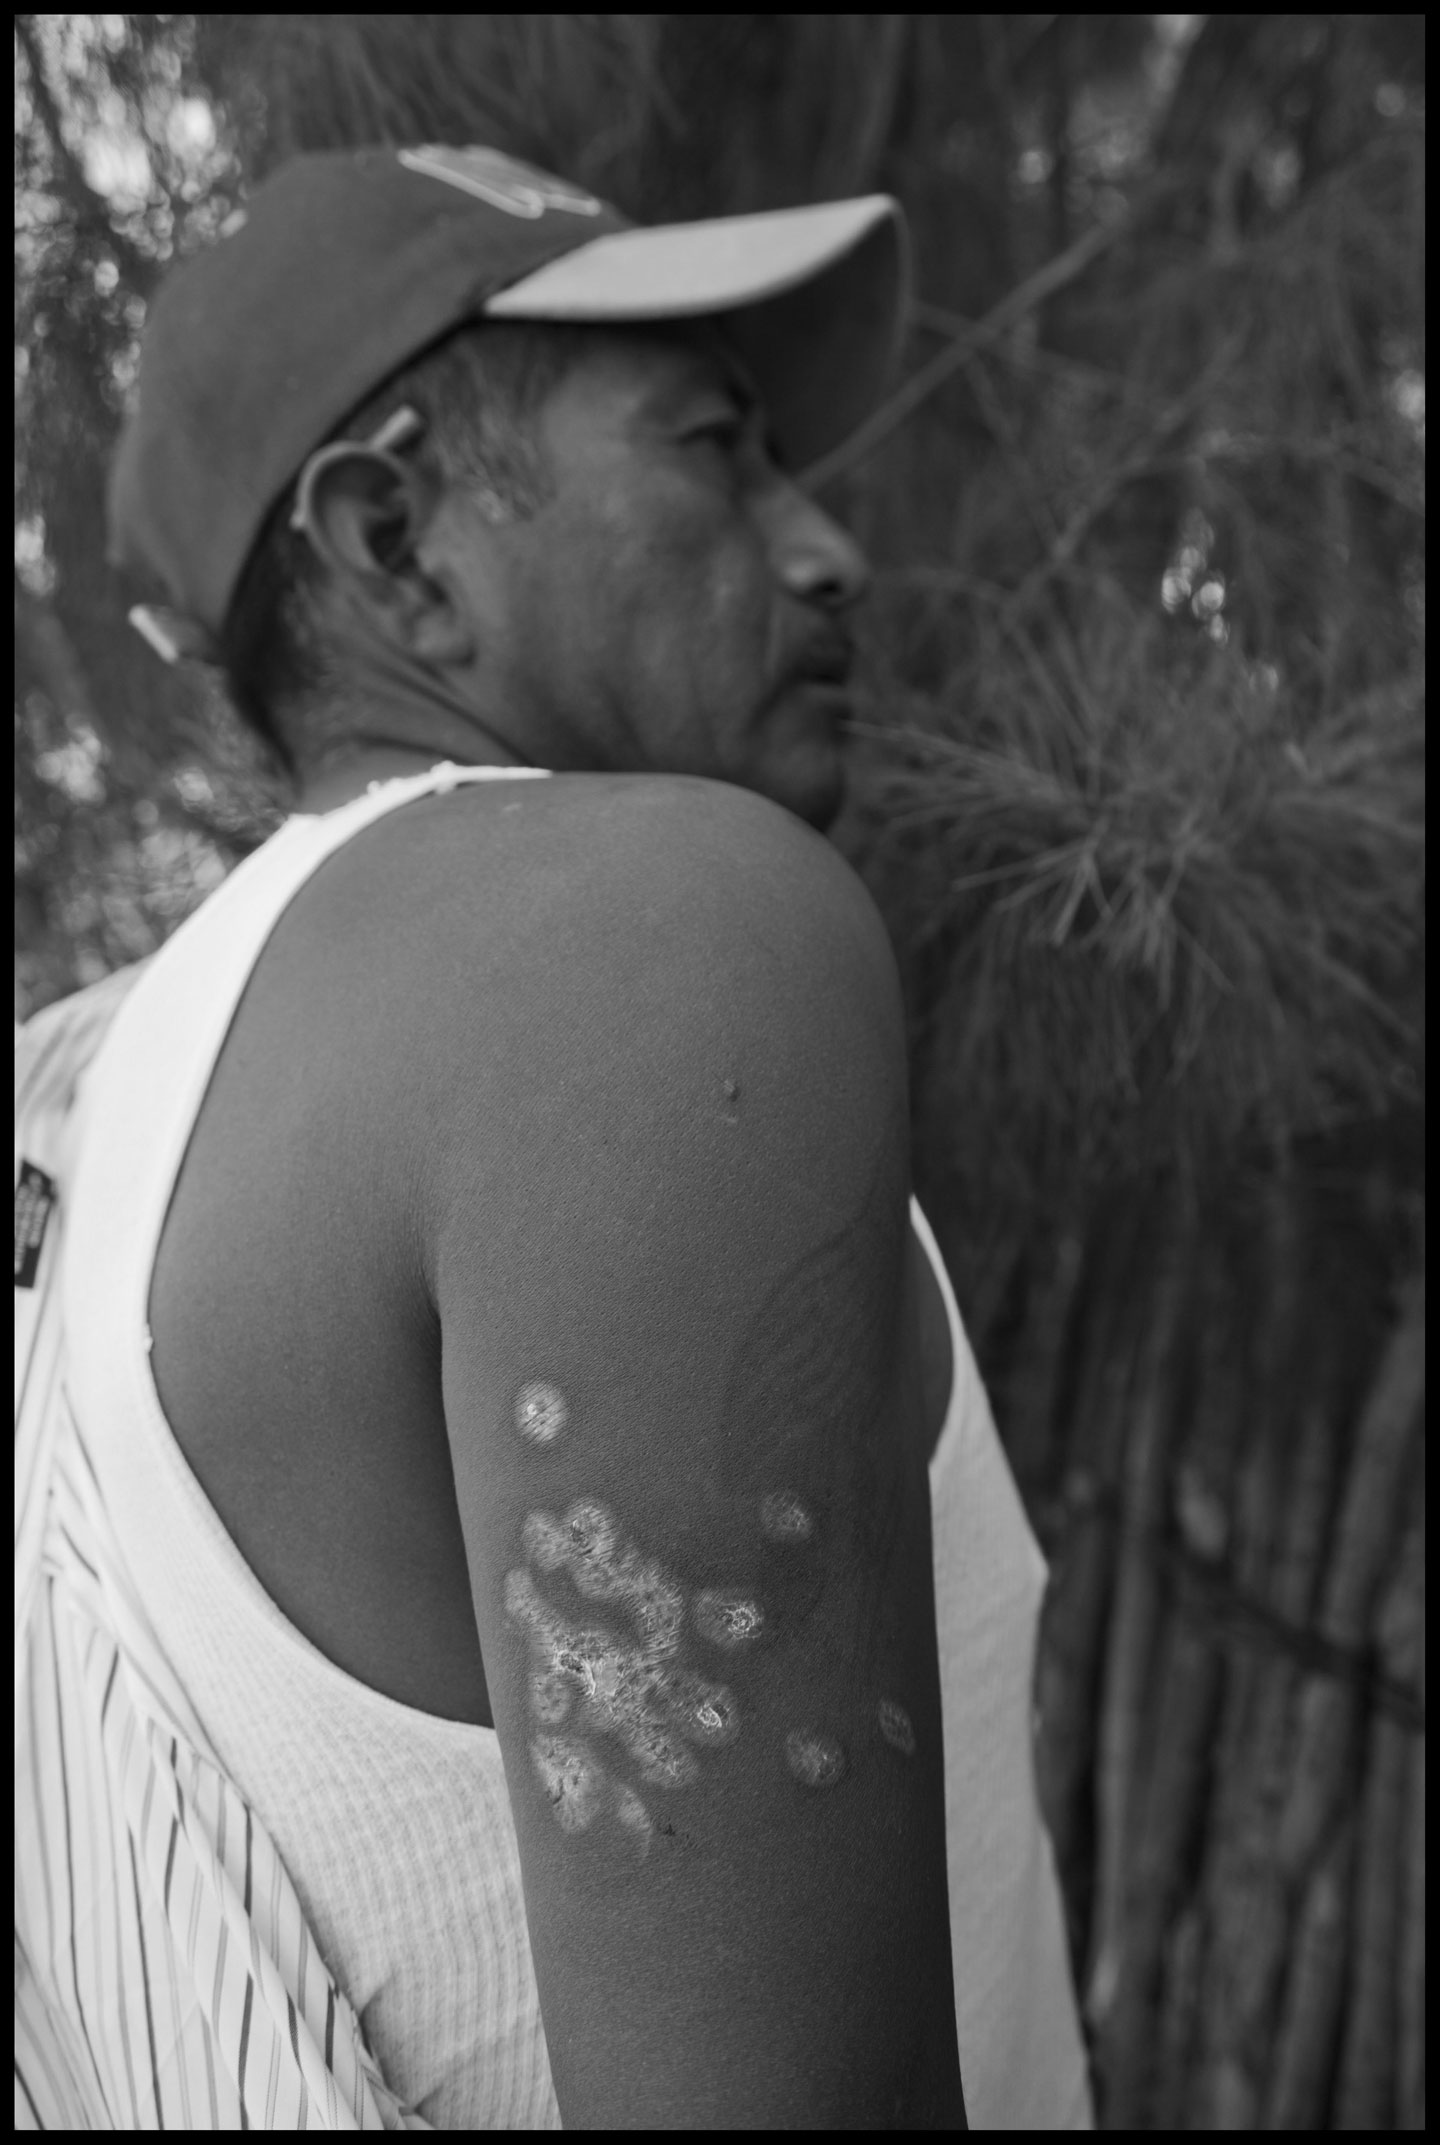 Faustino Hernandez, a leader of the FIOB in the San Quintin Valley, shows the wounds in his arm, received when he was shot by police during the farm-worker strike.